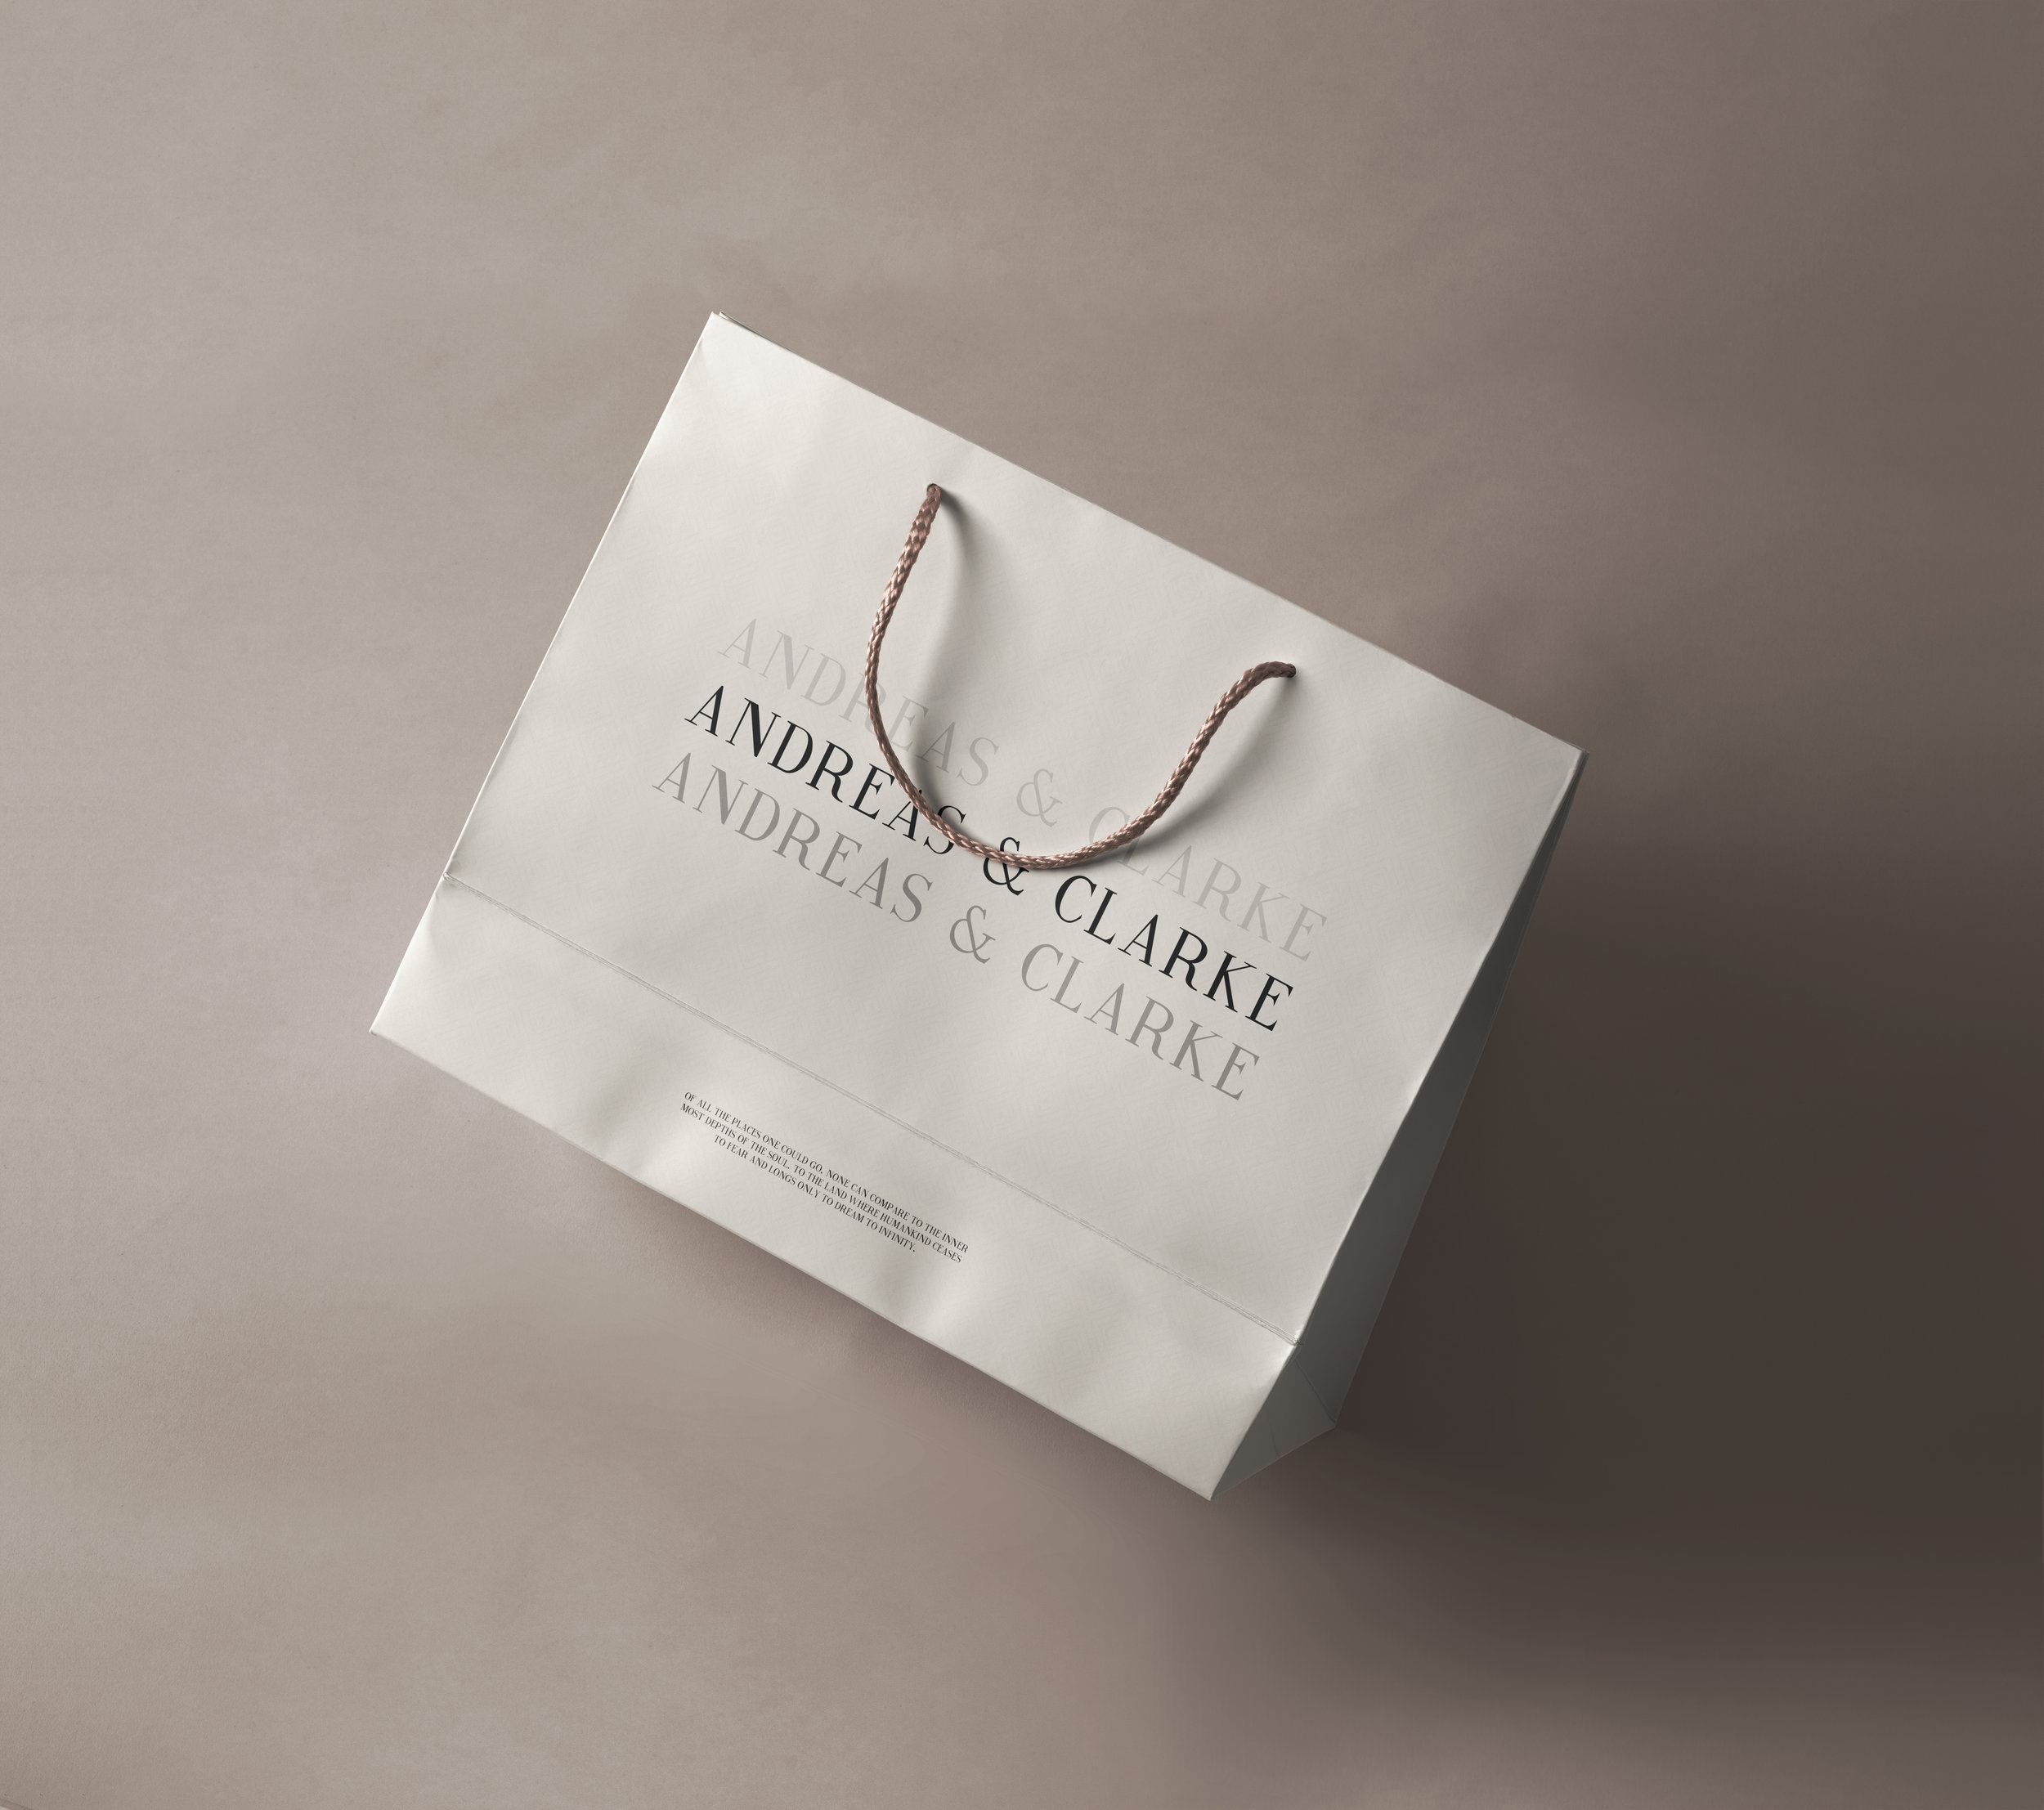 Andreas & Clarke - Shopping Bag Mockup.jpg